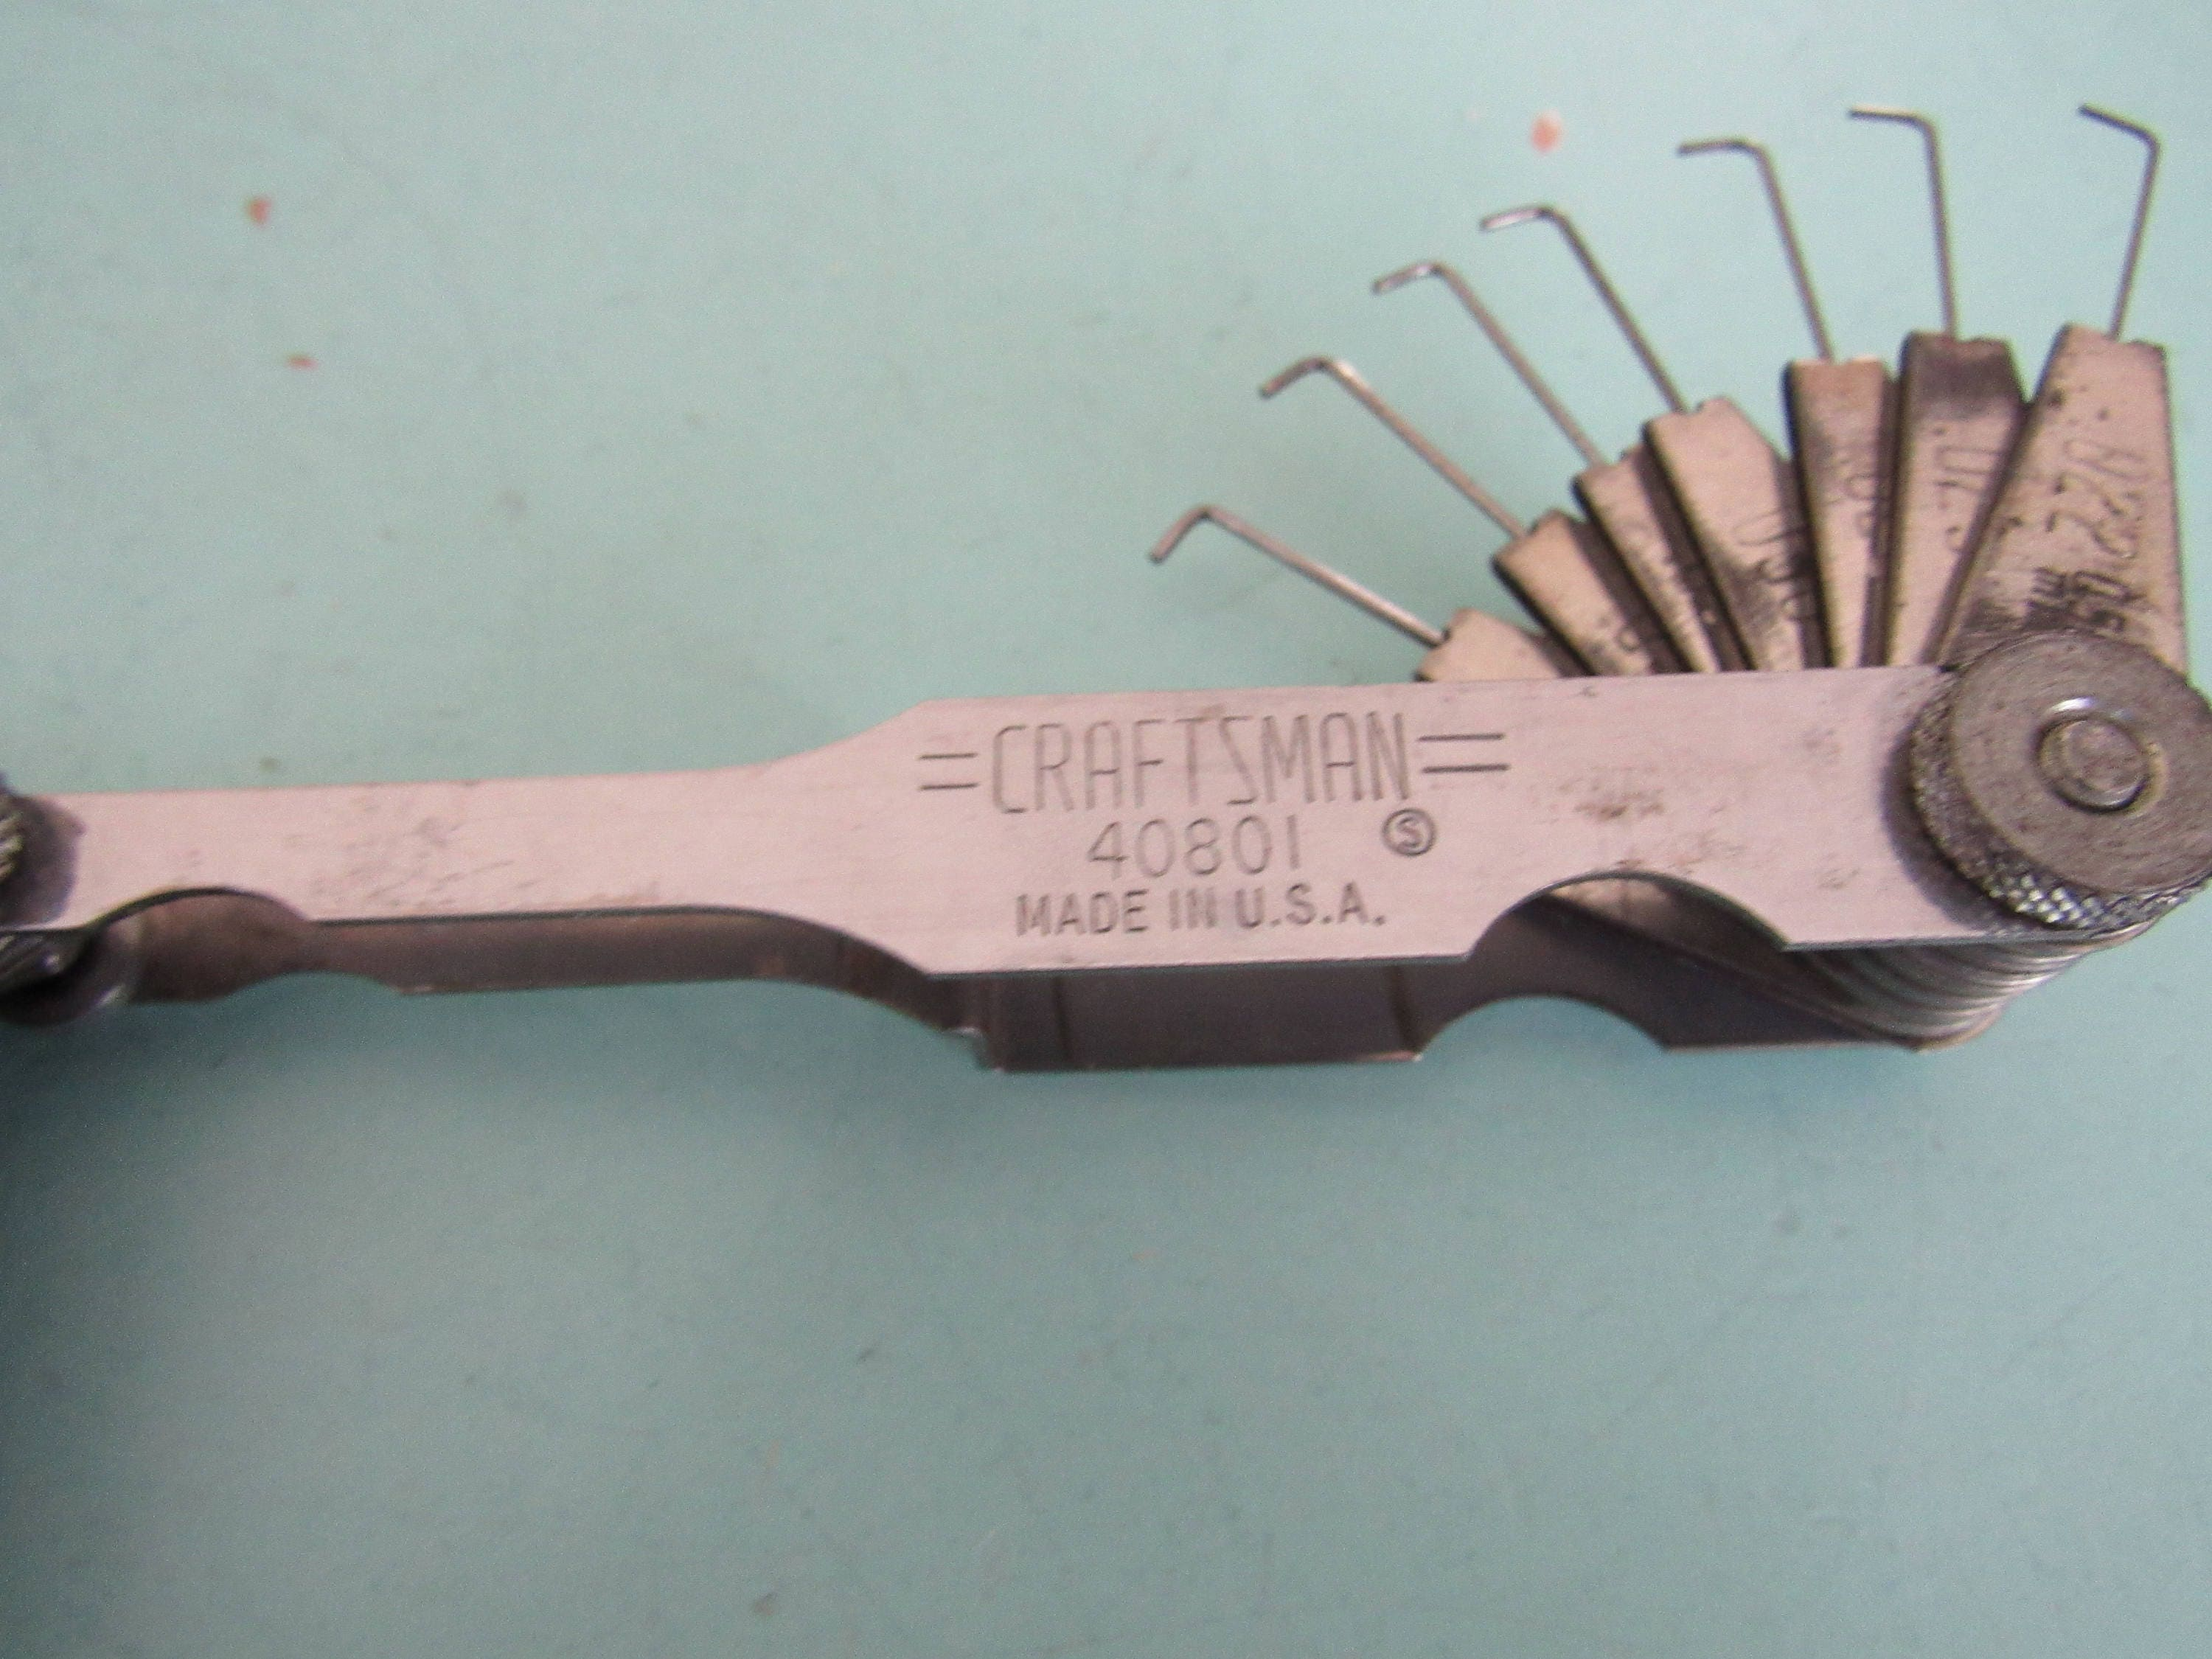 Vintage Craftsman 40801 Feeler and Spark Plug Gap Wire Ignition ...